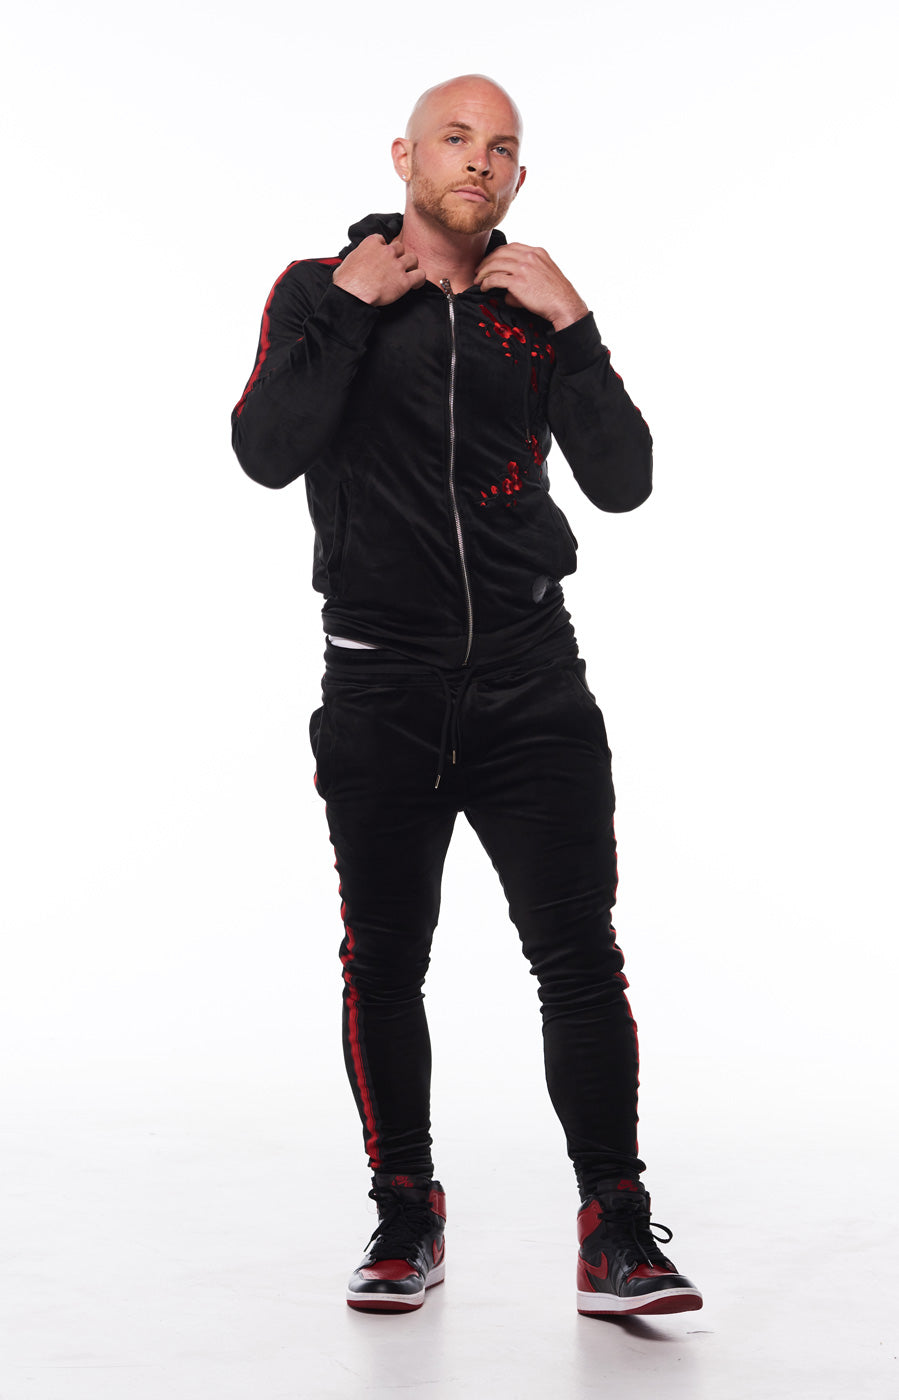 Men Tracksuit Black with Red Roses by Project x Paris - Brit Boss